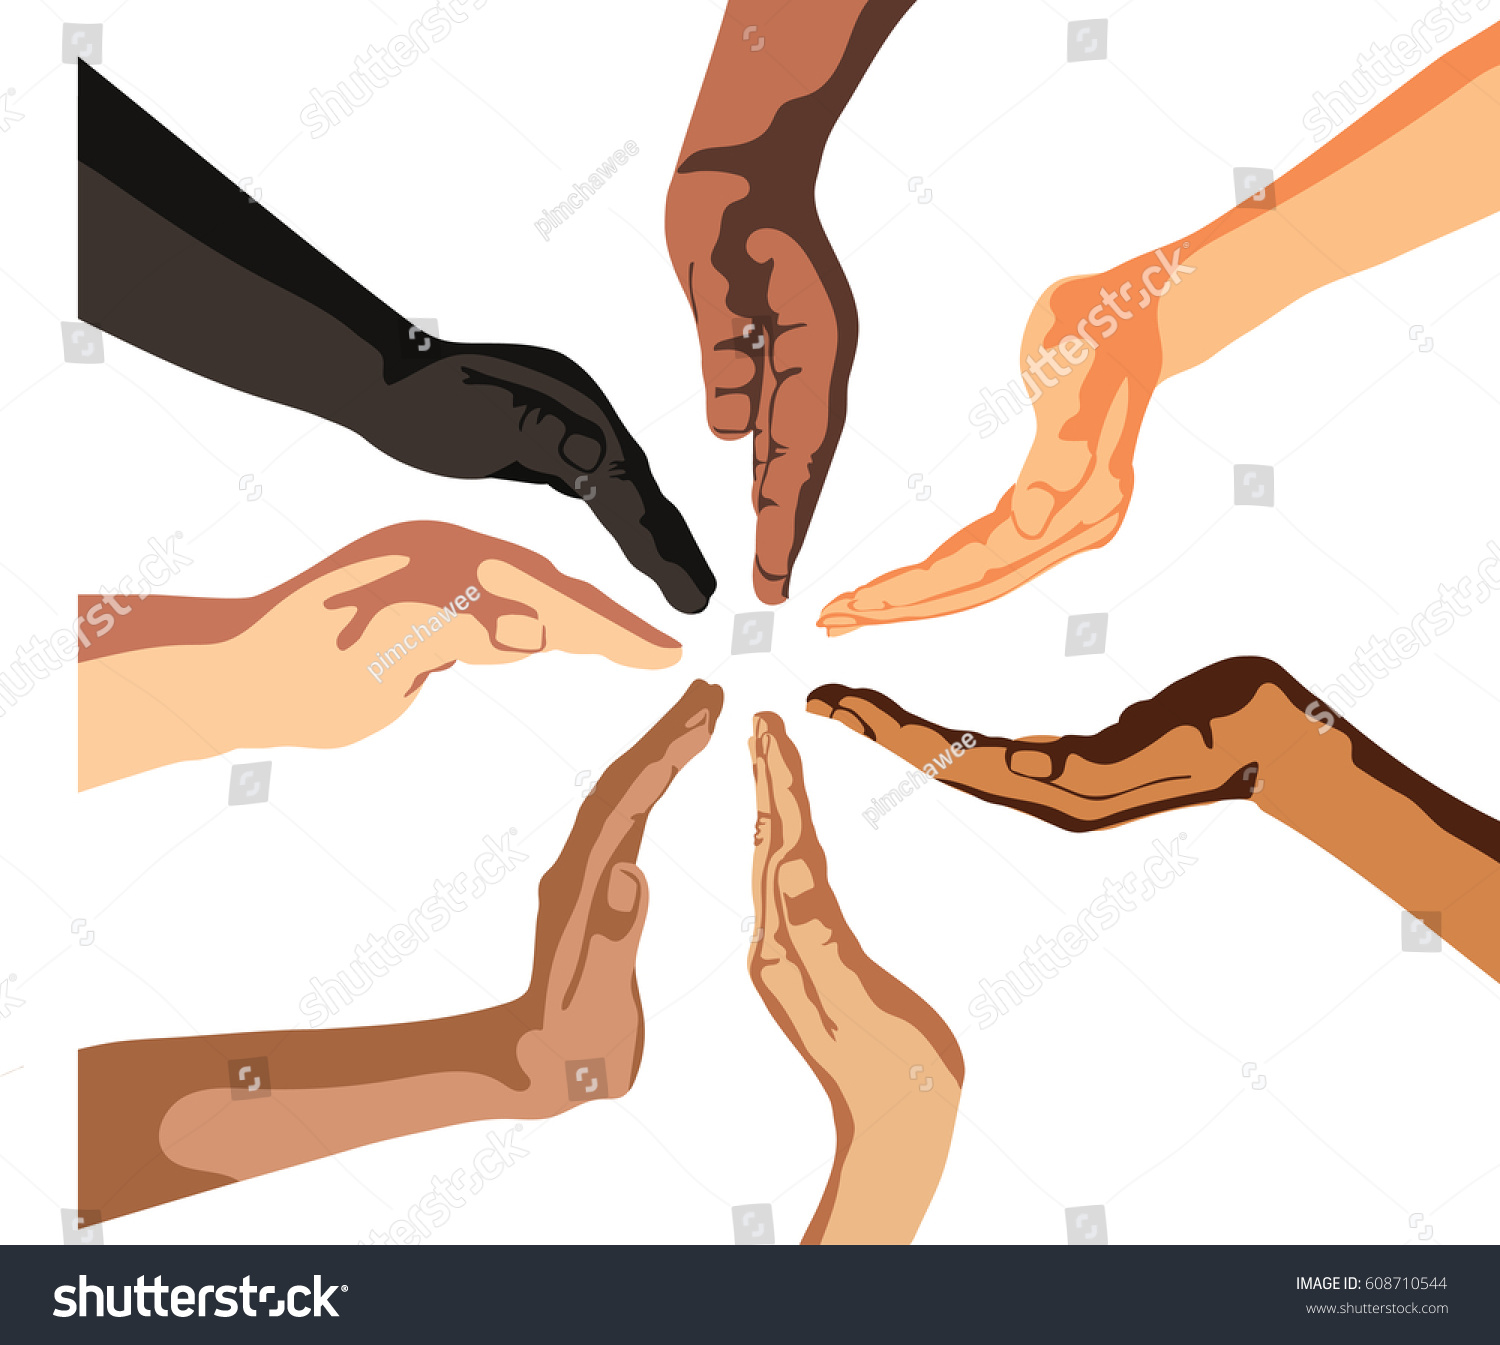 Silhouette vector human hands symbol protection stock vector silhouette vector of human hands symbol of protection on white background biocorpaavc